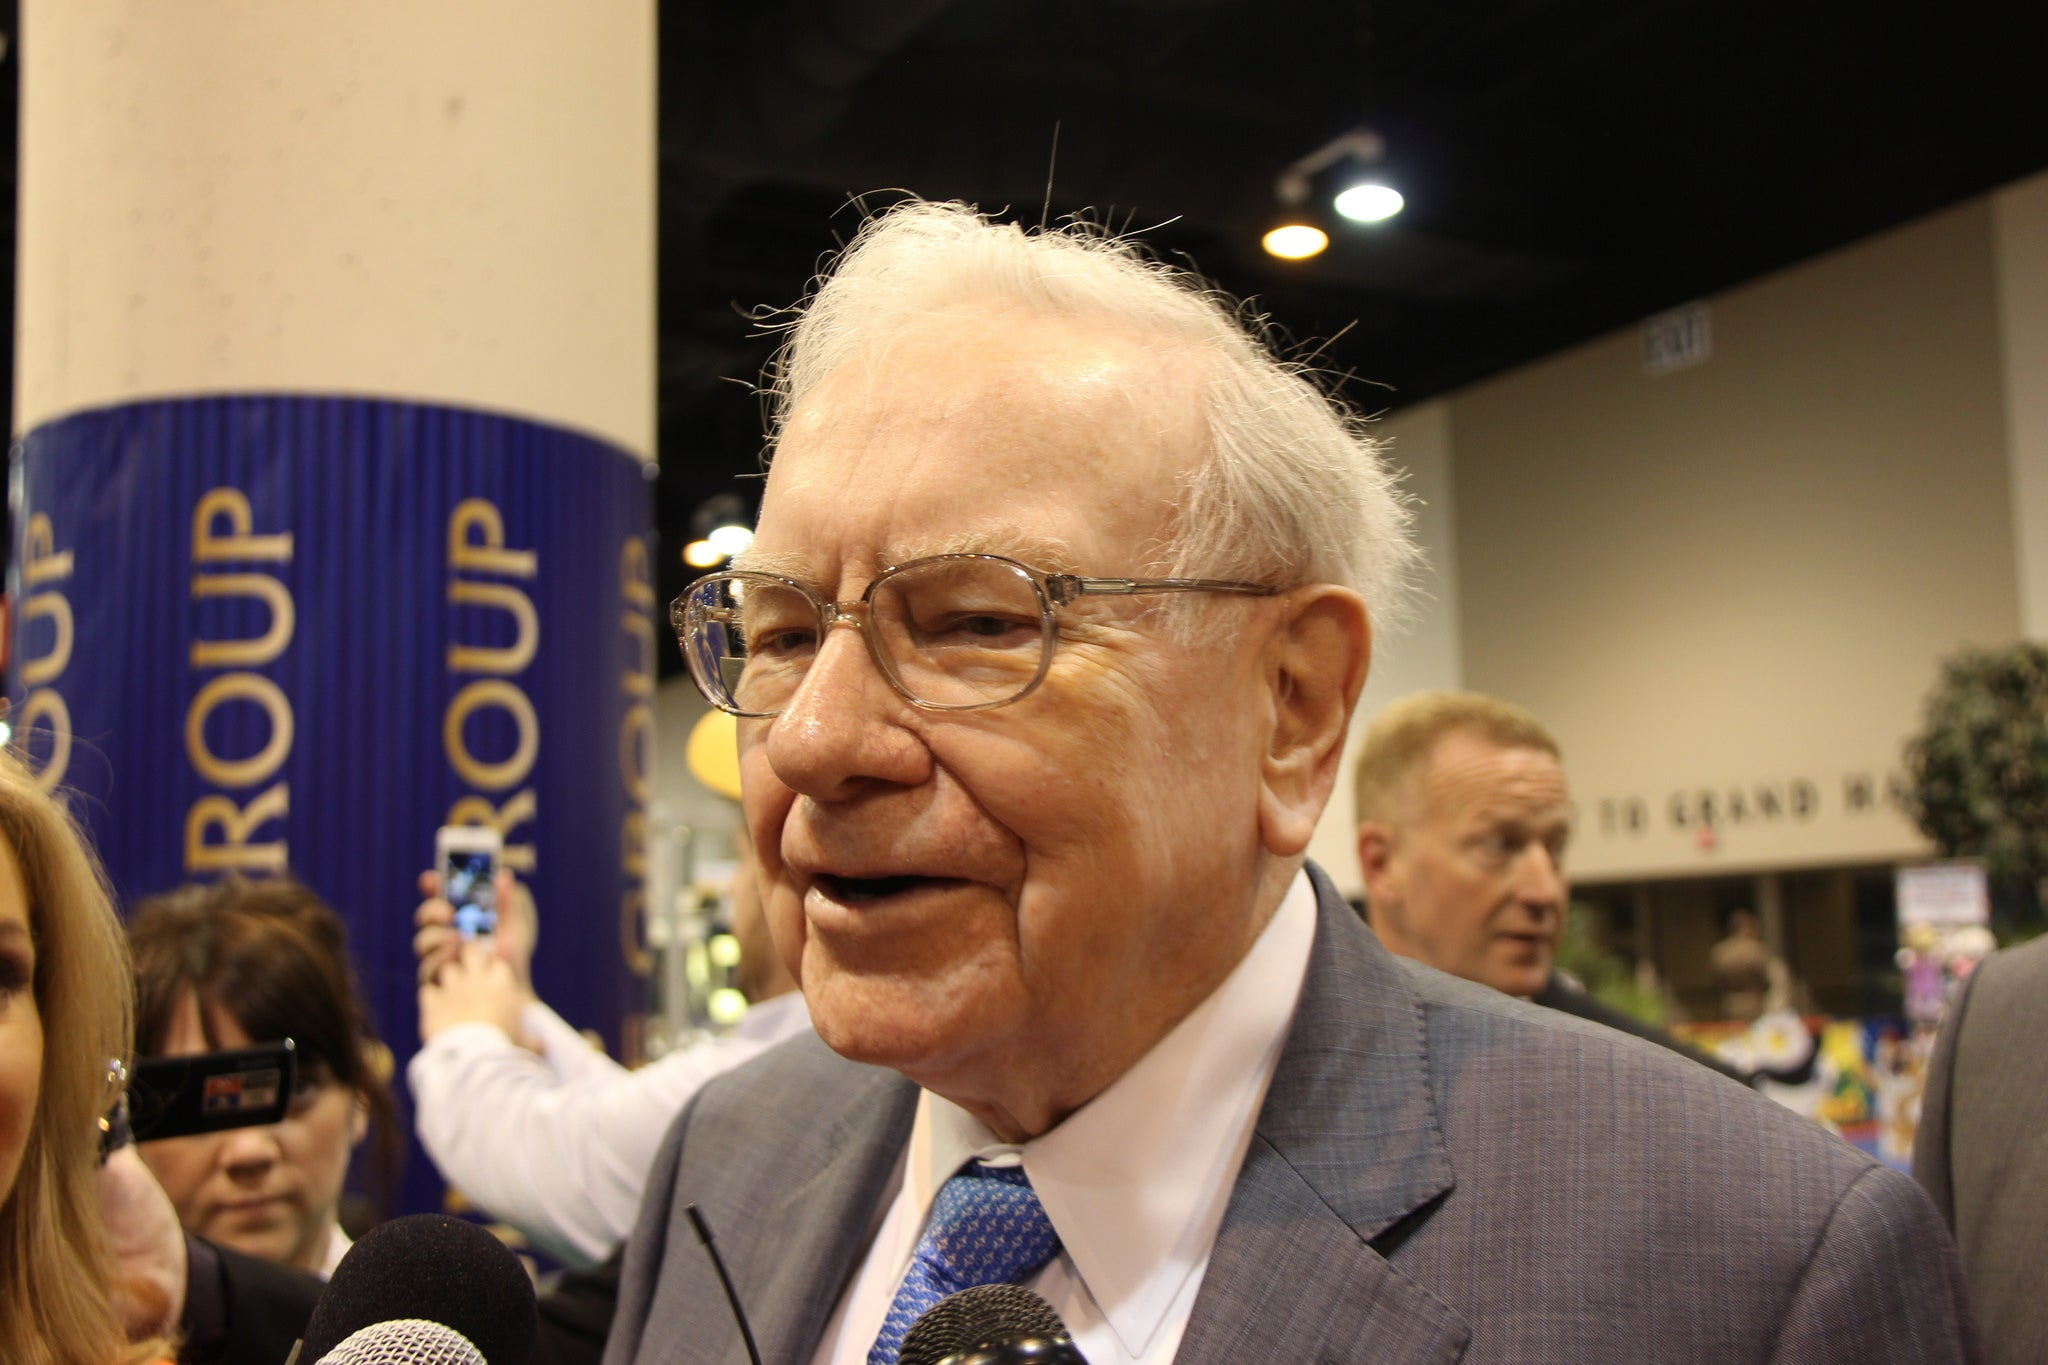 3 Stocks Warren Buffett Personally Owns That You Can Buy Right Now The Motley Fool